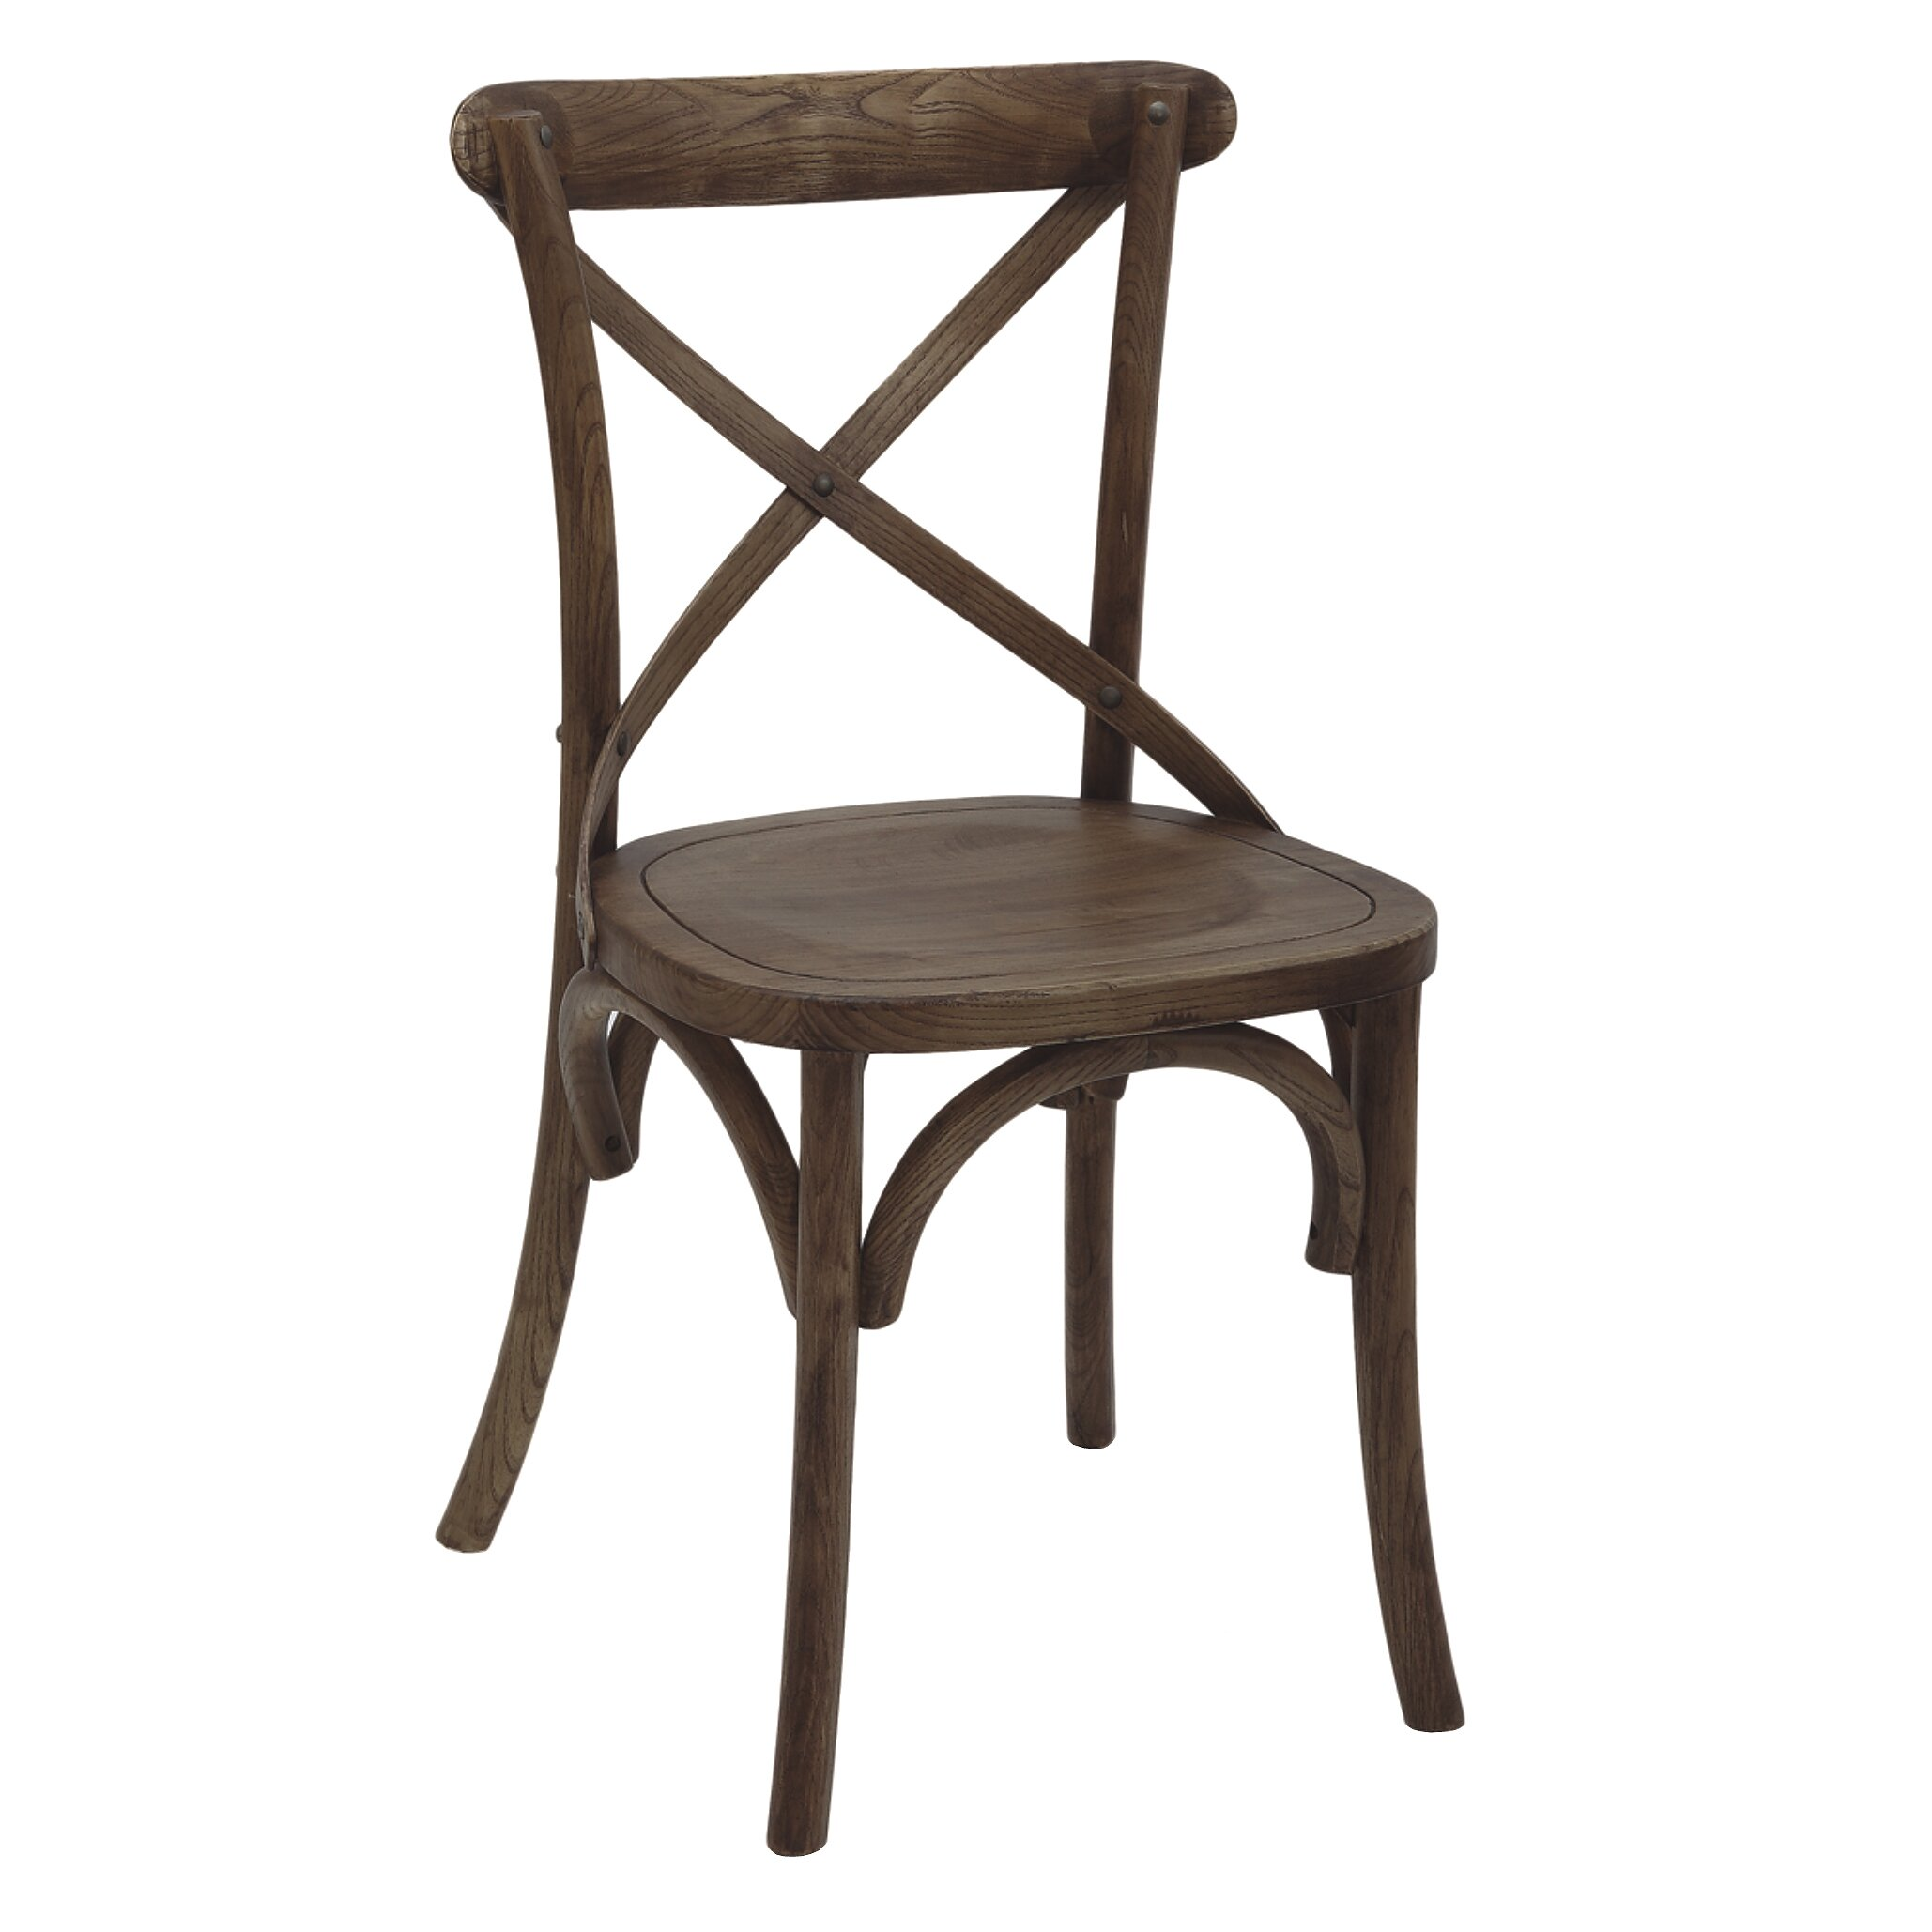 Laurel foundry modern farmhouse alexandre side chair wayfair for Modern farmhouse dining chairs